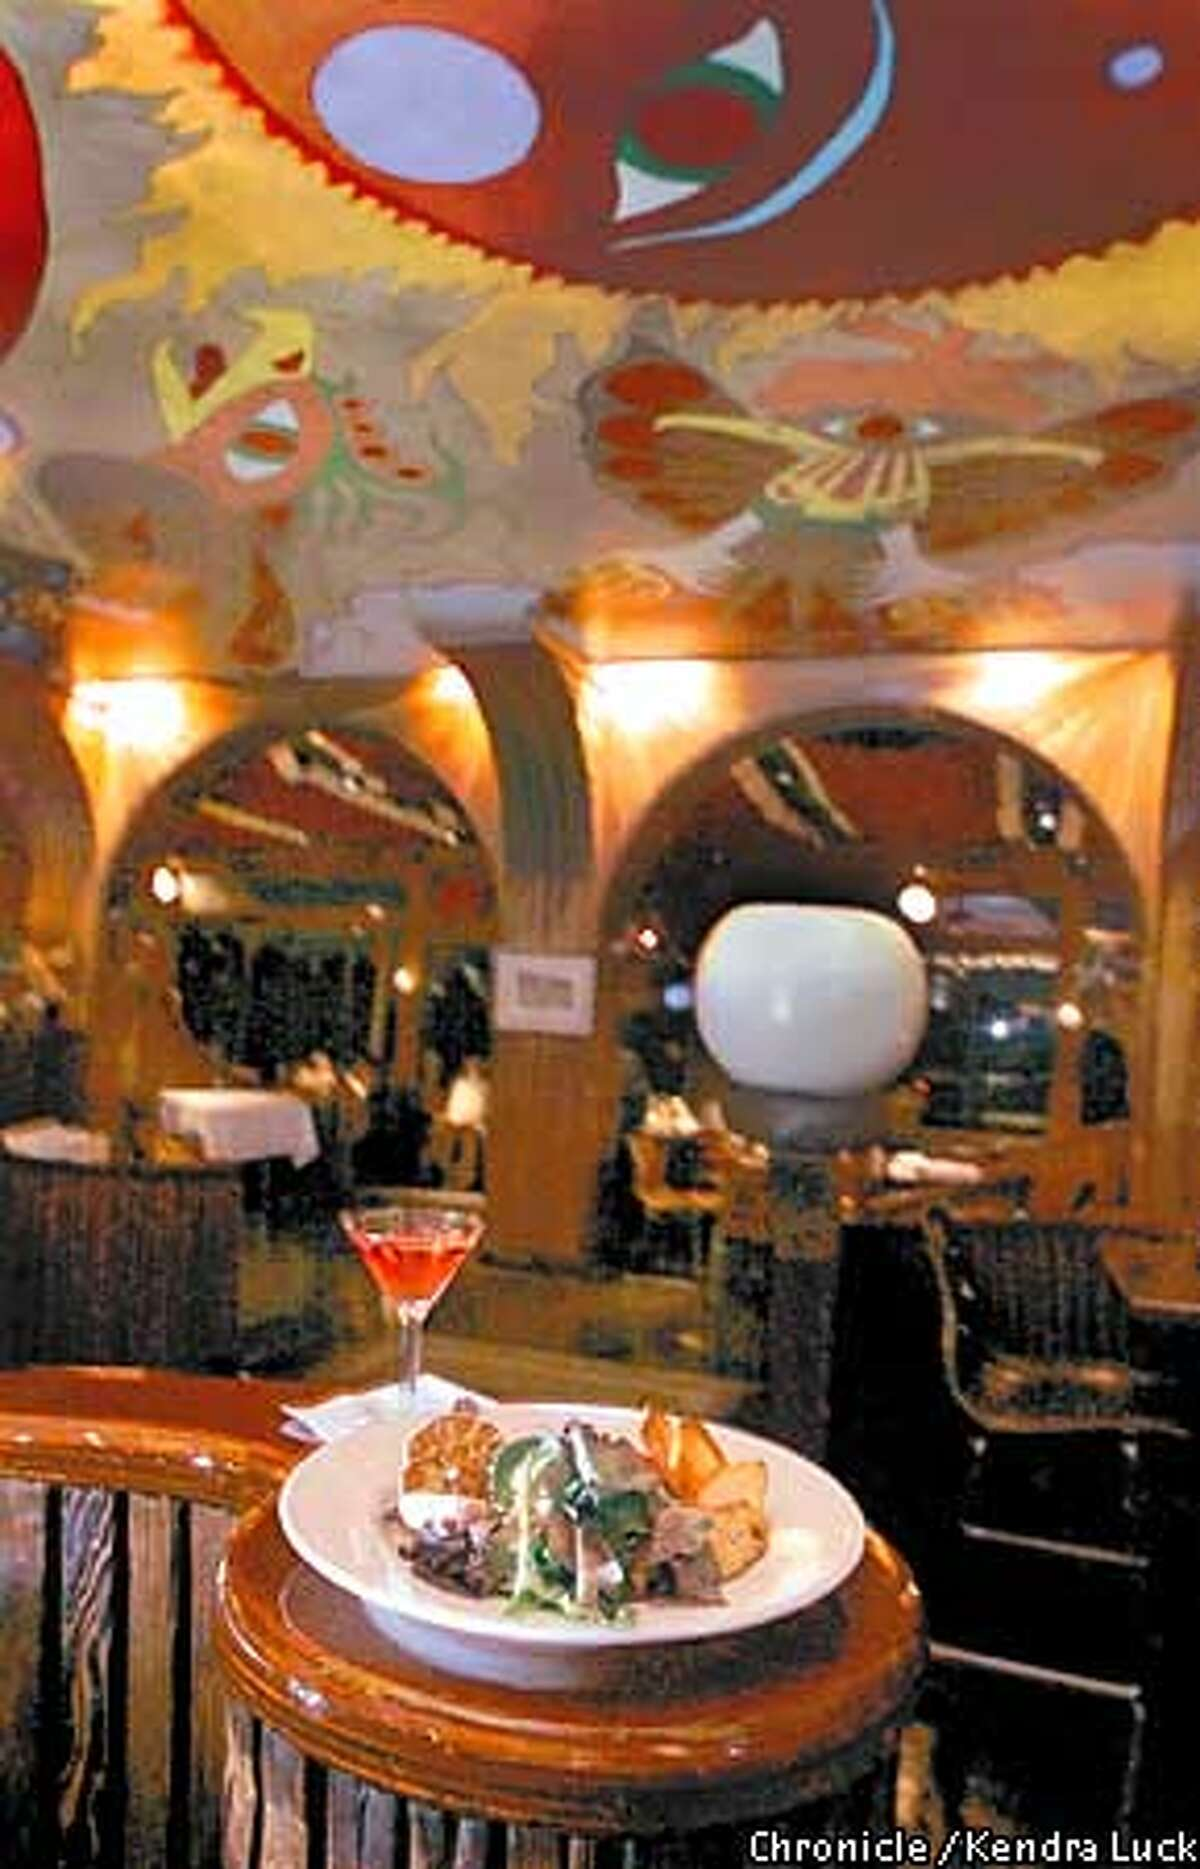 Representing the late 1960's is Horizons in Sausalito complete with hand crafted woodwork, mural on the ceiling and 40 pound round candles, here is a cocktail and a roasted garlic appetizer. (KENDRA LUCK/SAN FRANCISCO CHRONICLE)